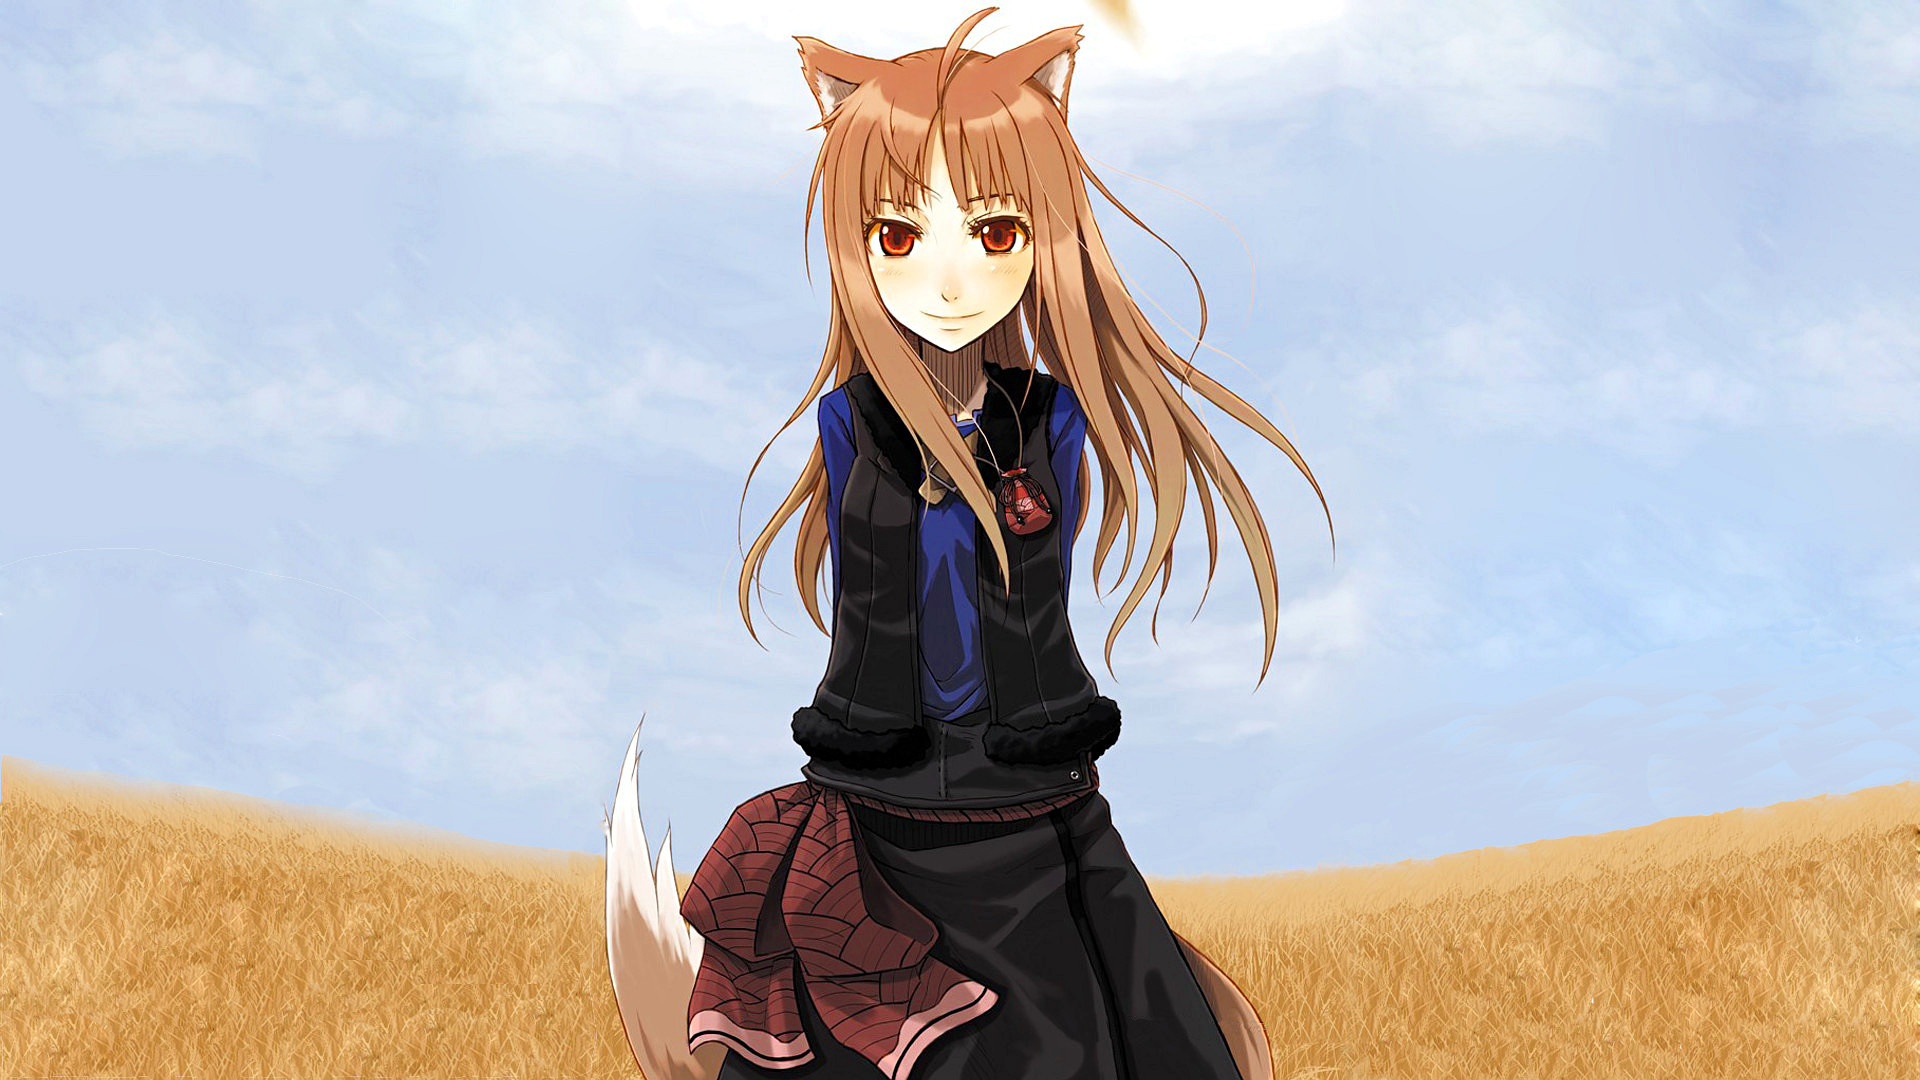 Spice and Wolf Backgrounds